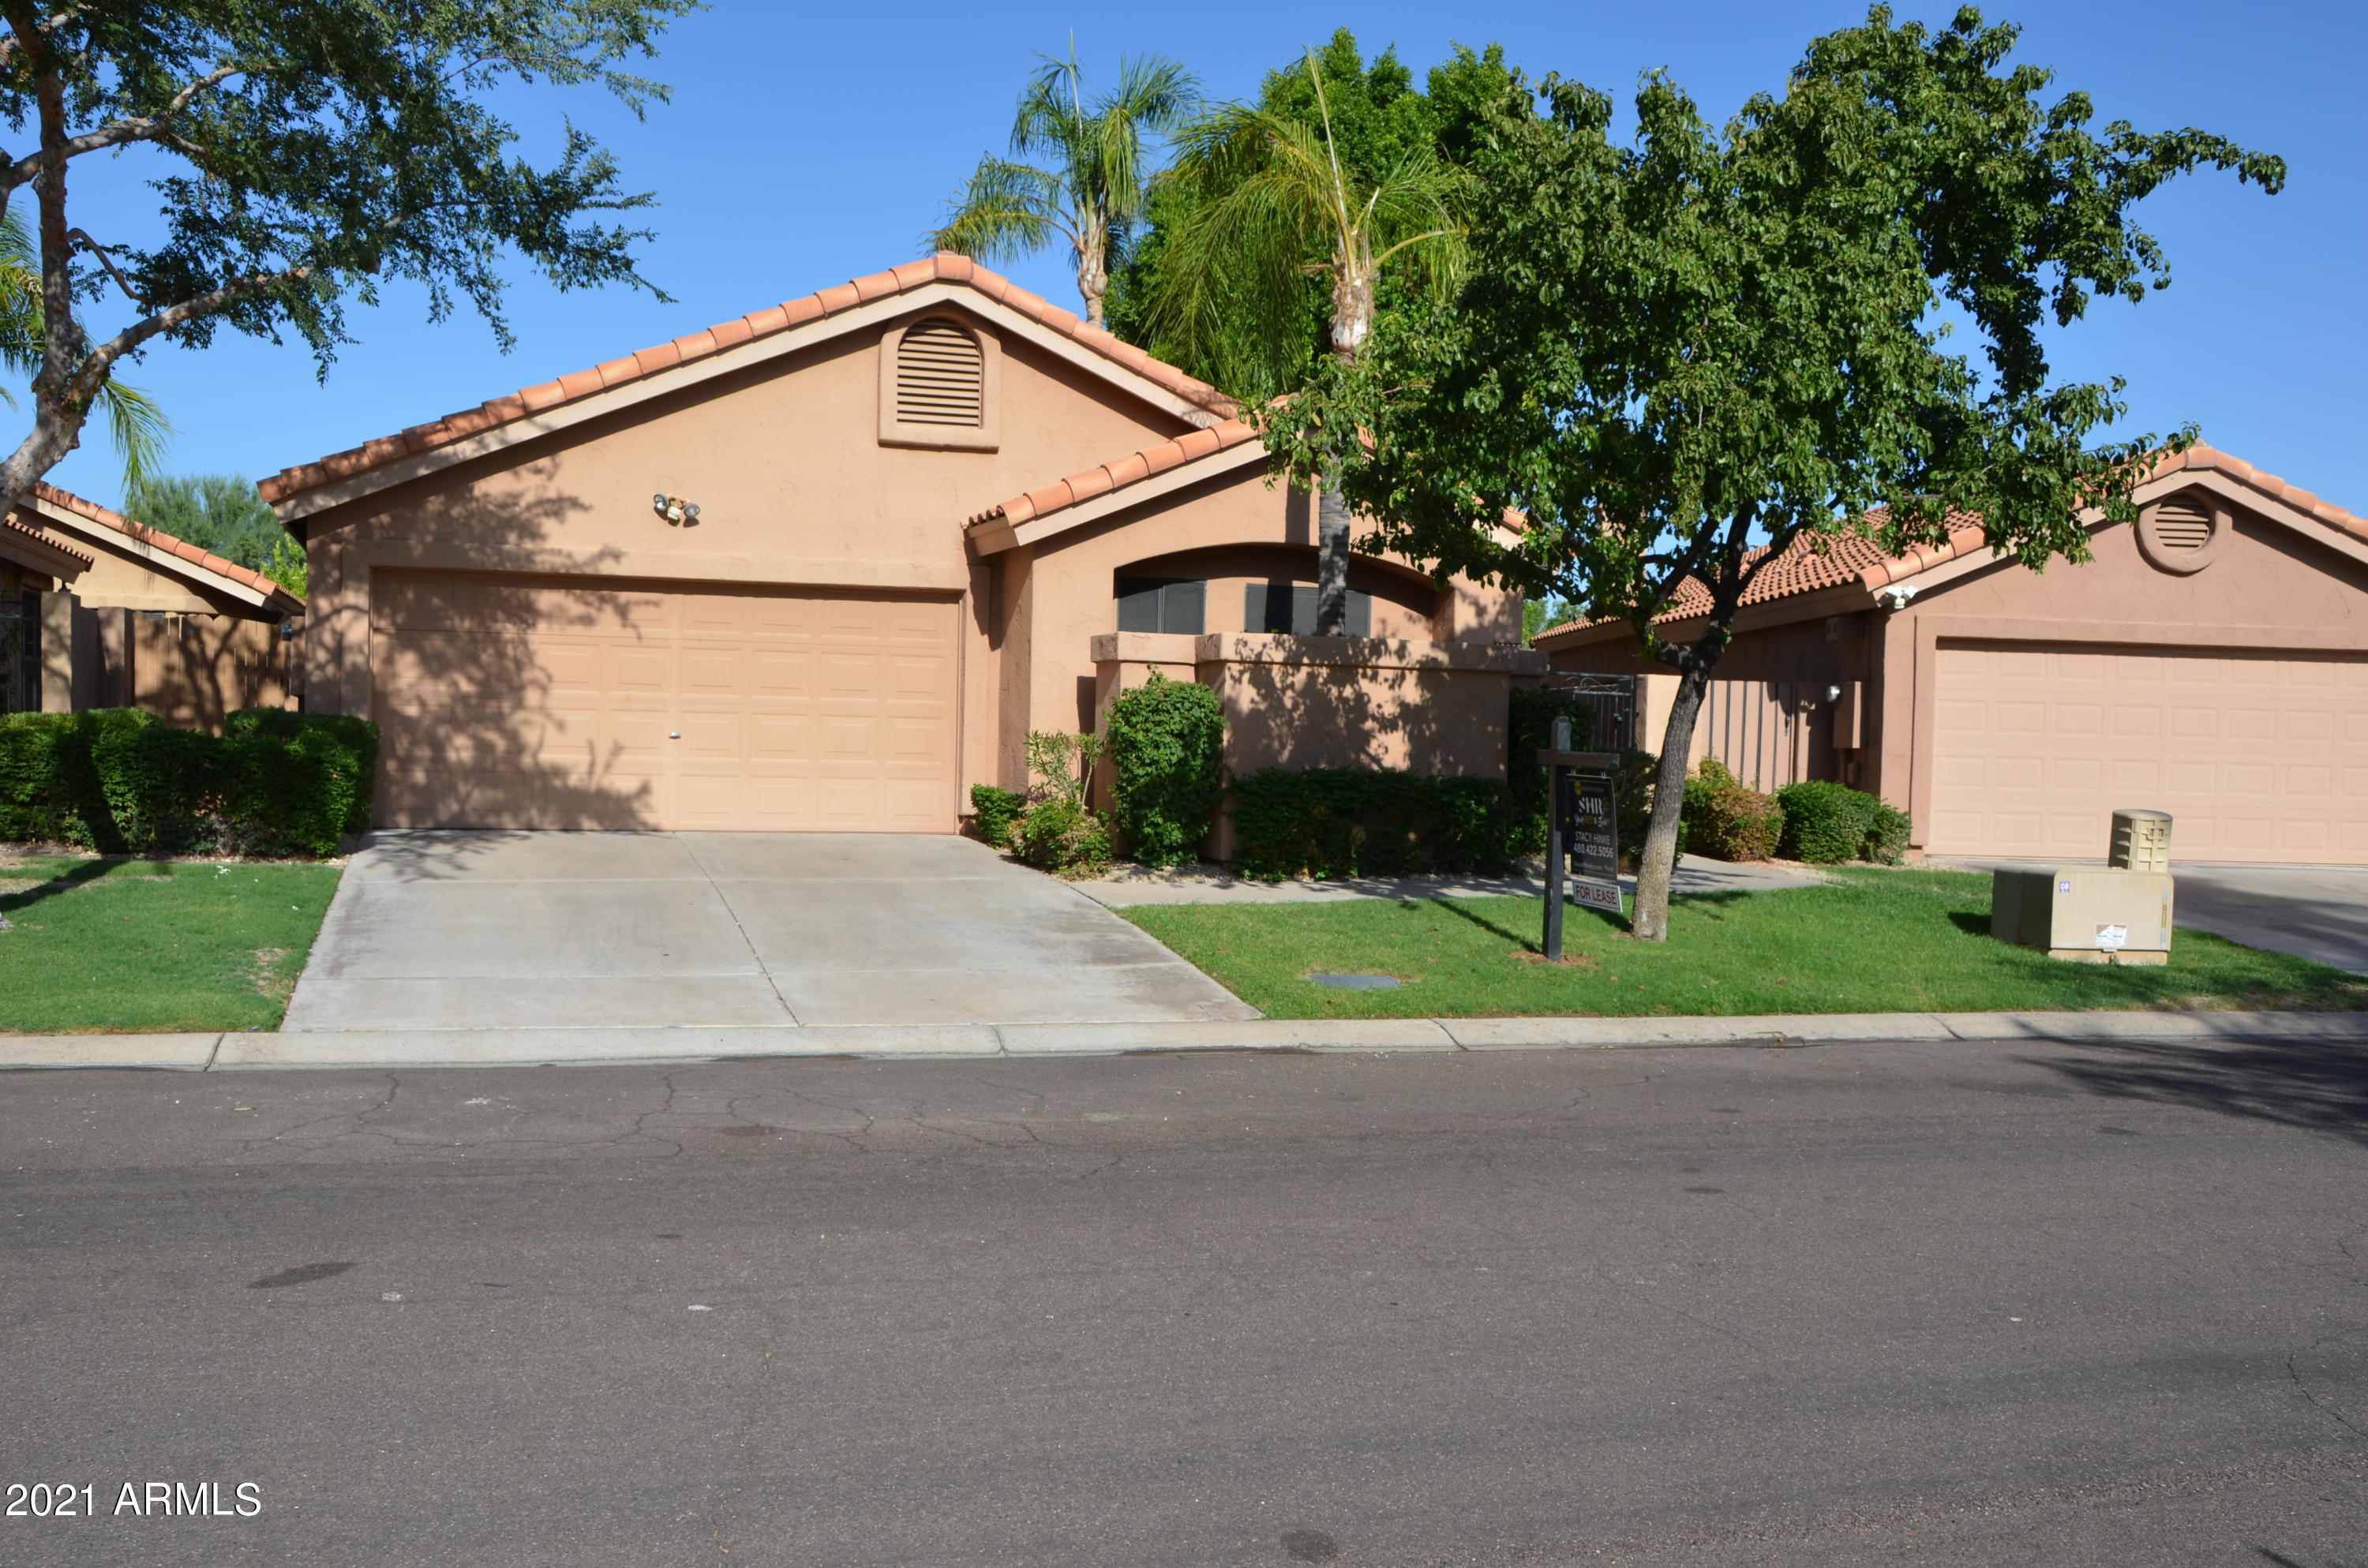 13325 N 94TH Way, Scottsdale, AZ 85260, 3 Bedrooms Bedrooms, ,Residential Lease,For Rent,13325 N 94TH Way,6222582